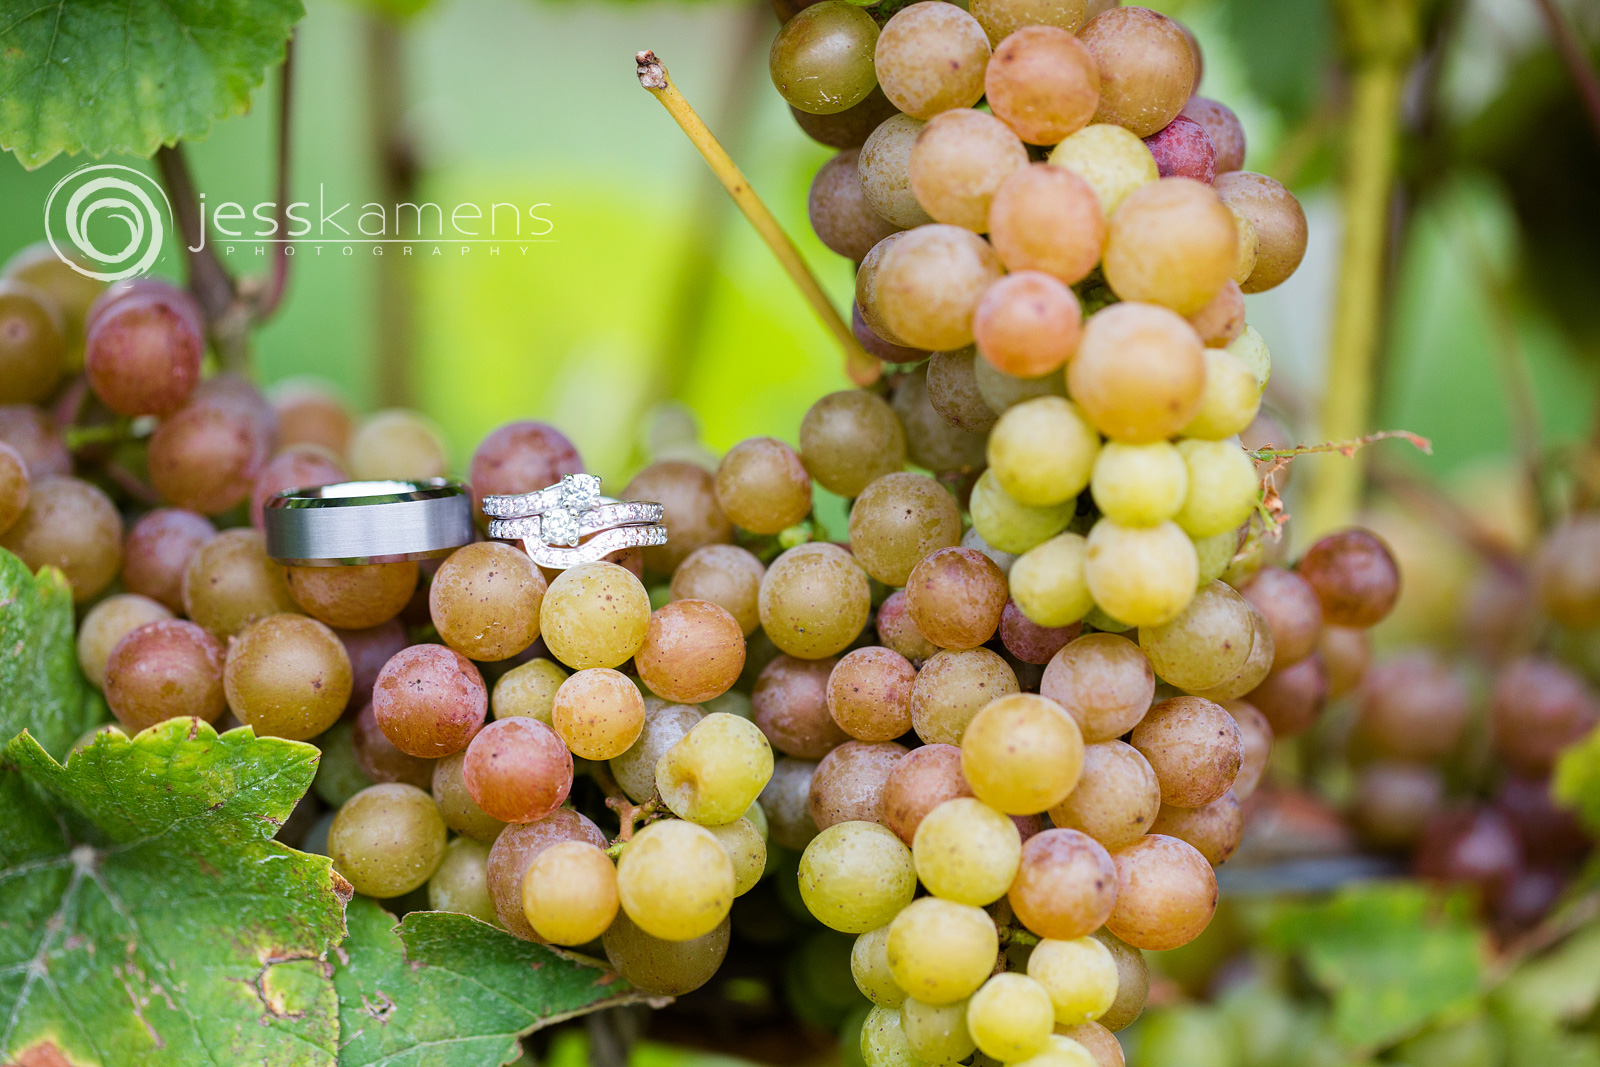 wedding rings on grapes in wine country in Geneva, NY